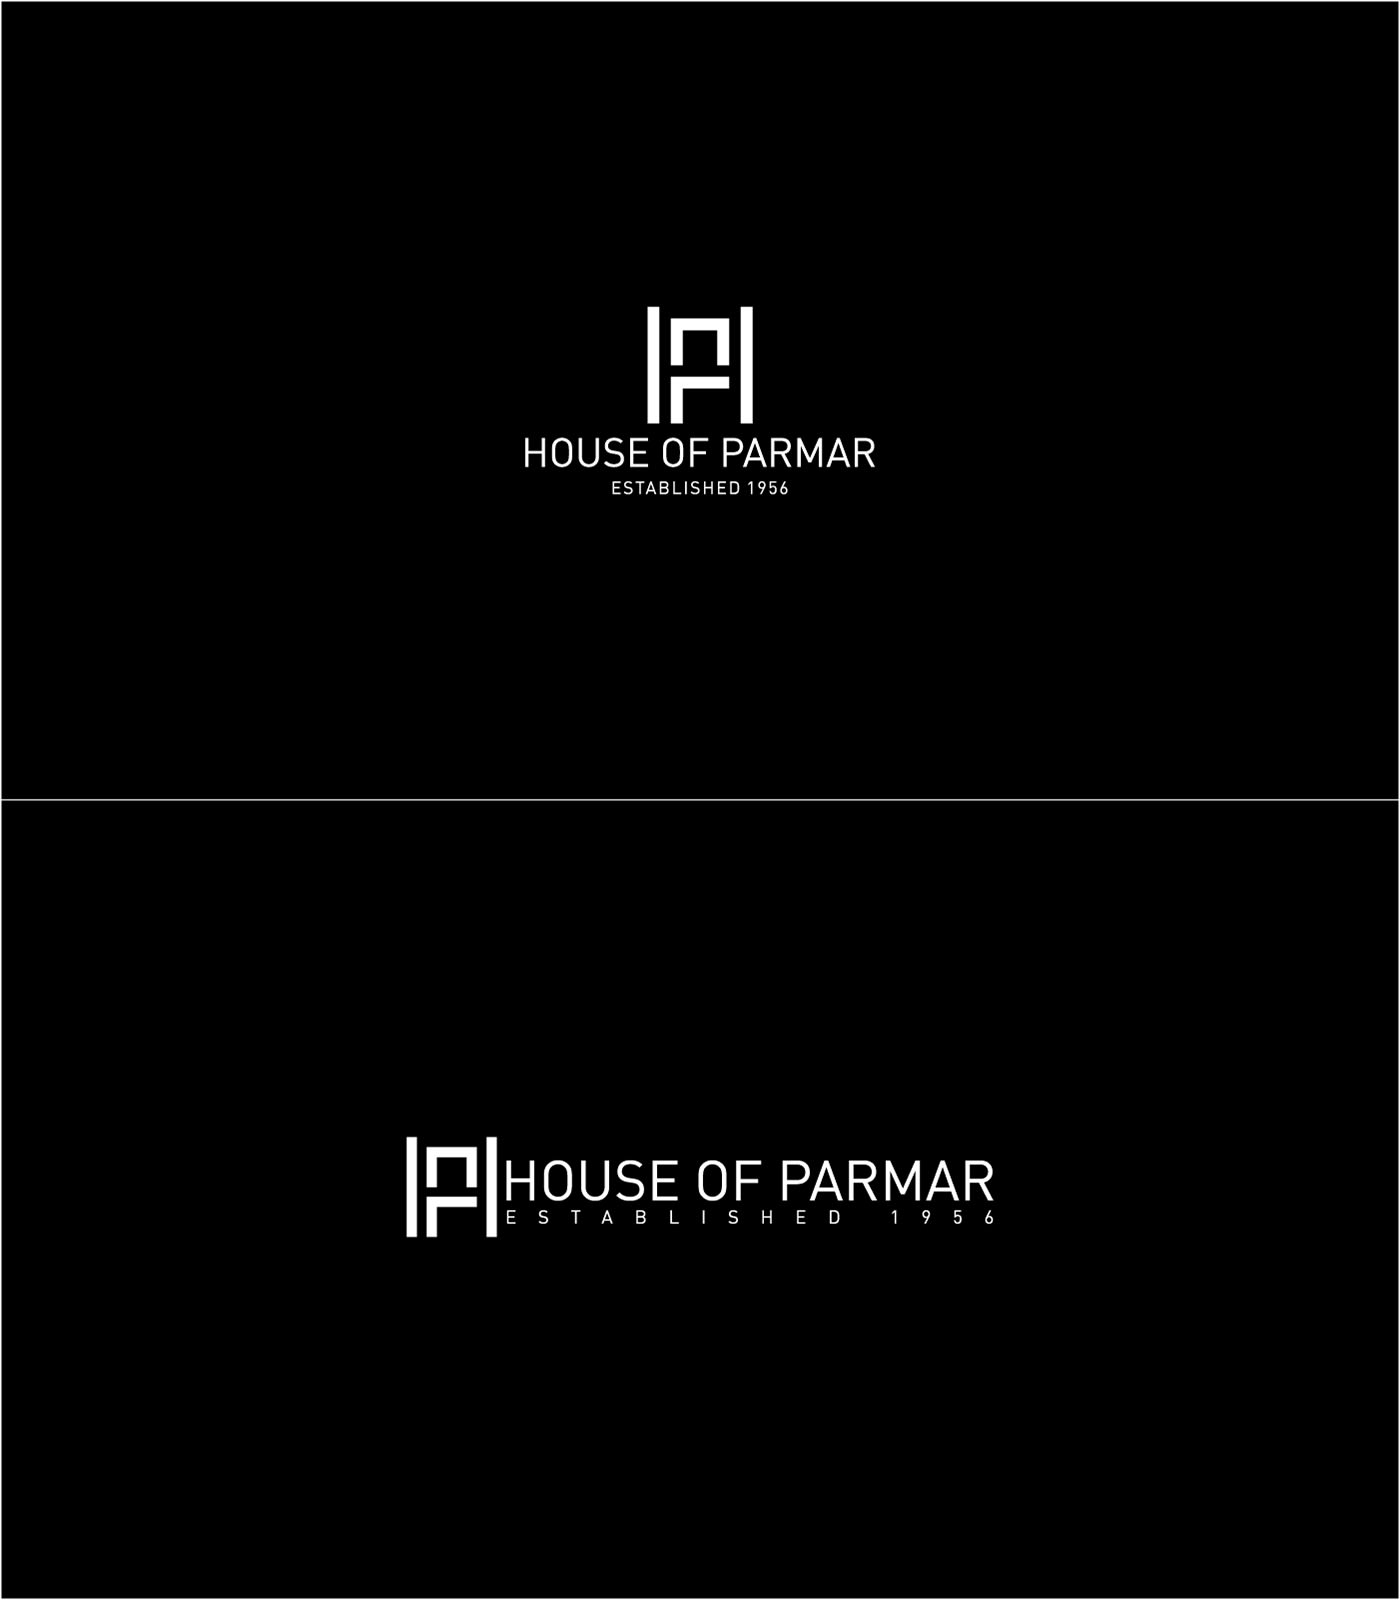 Brand Identity for House of Parmar